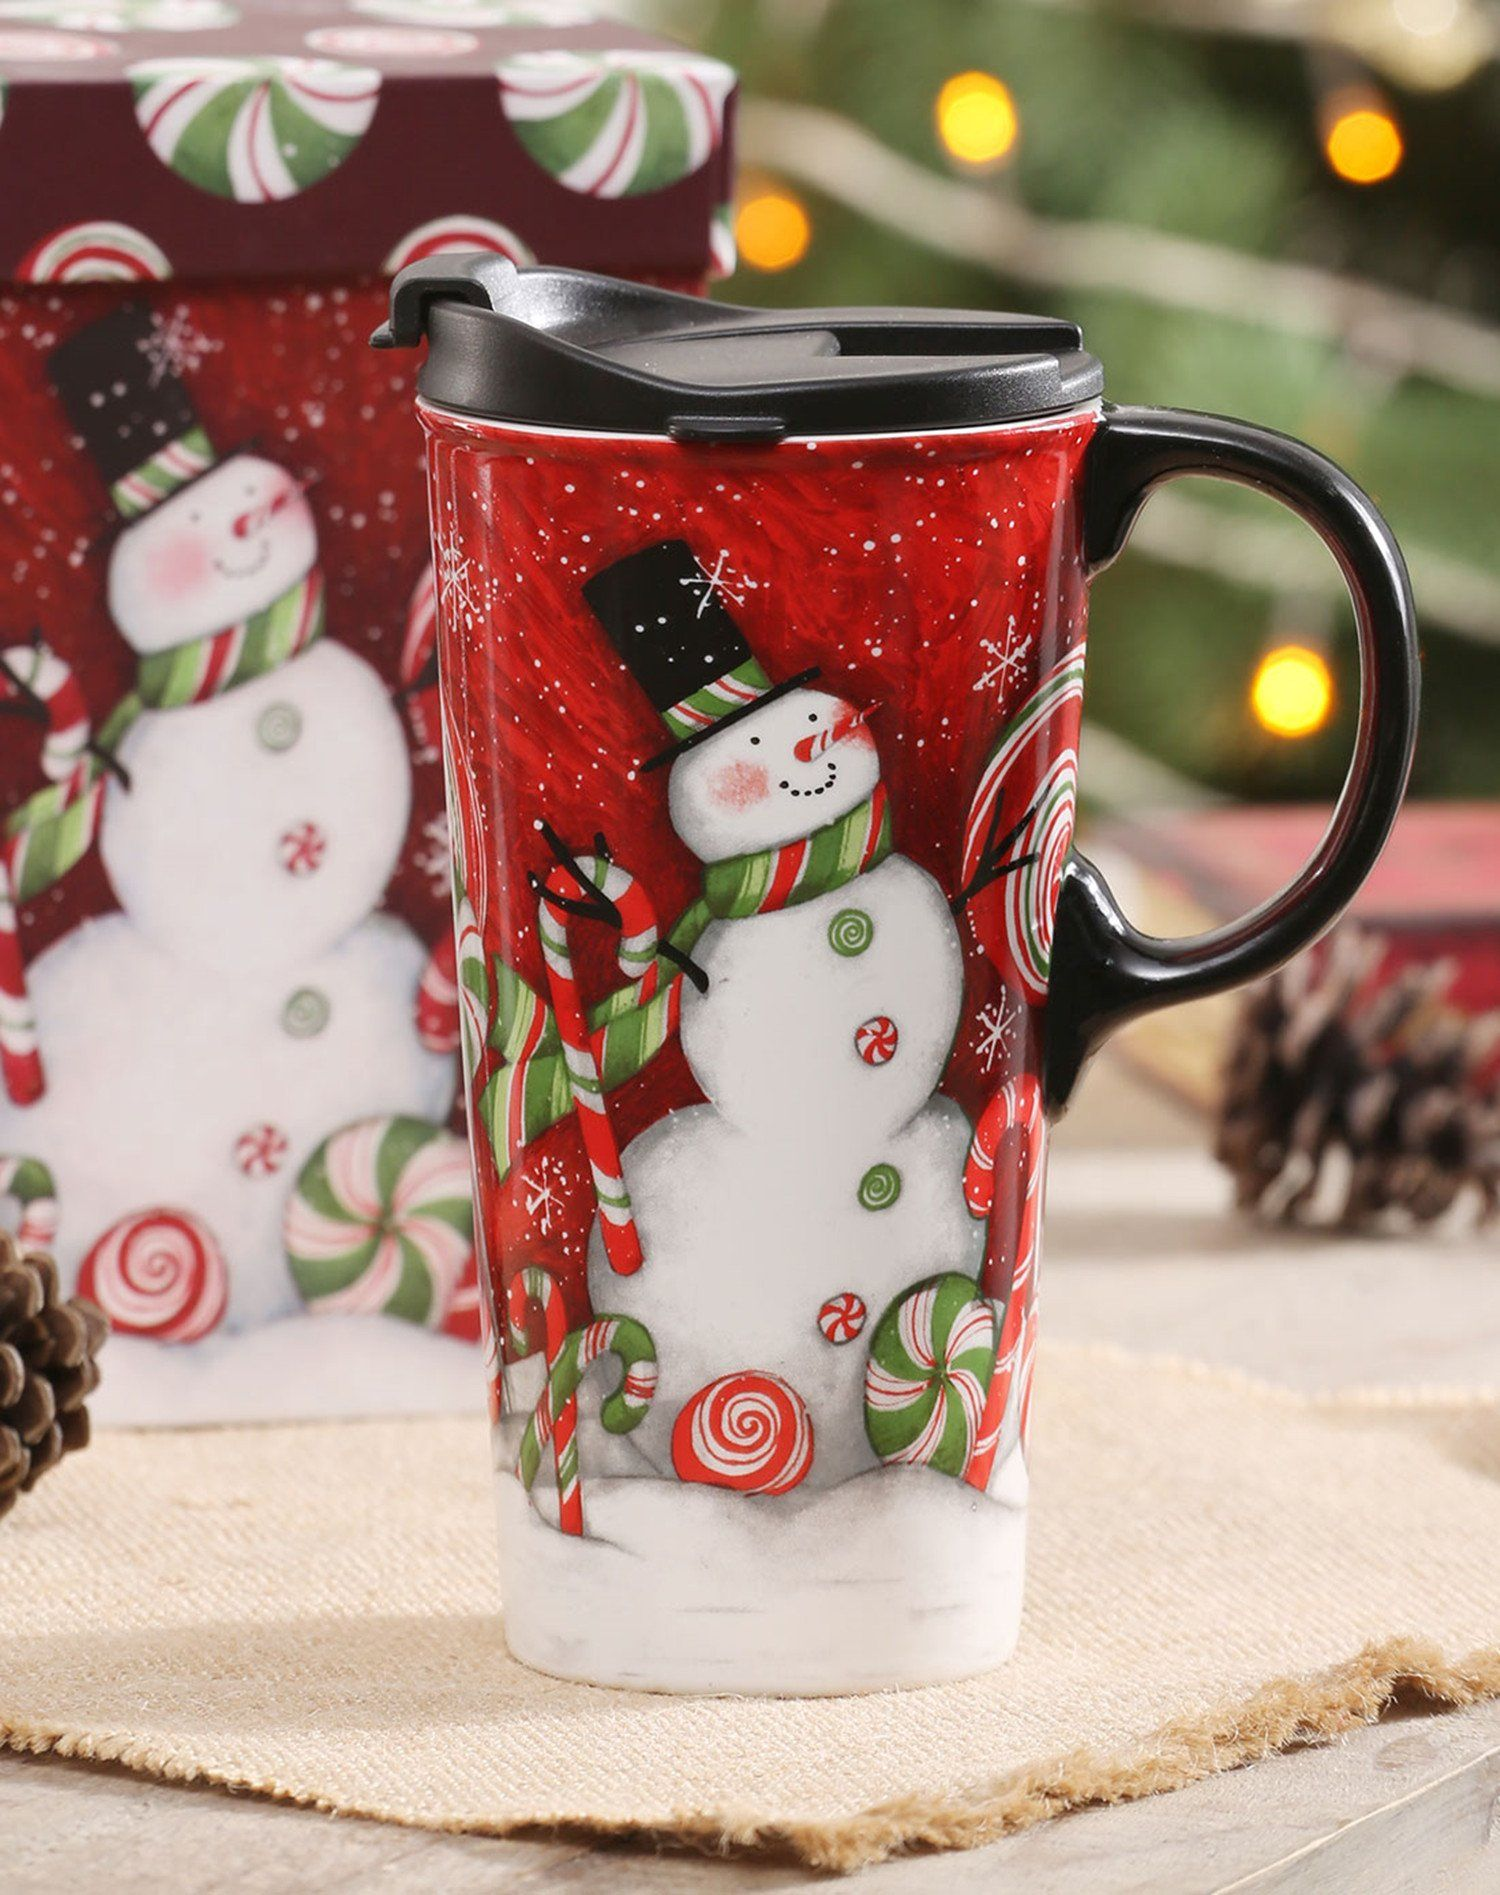 CEDAR HOME Snowman Santa Mug Travel Coffee Ceramic Tea Cup